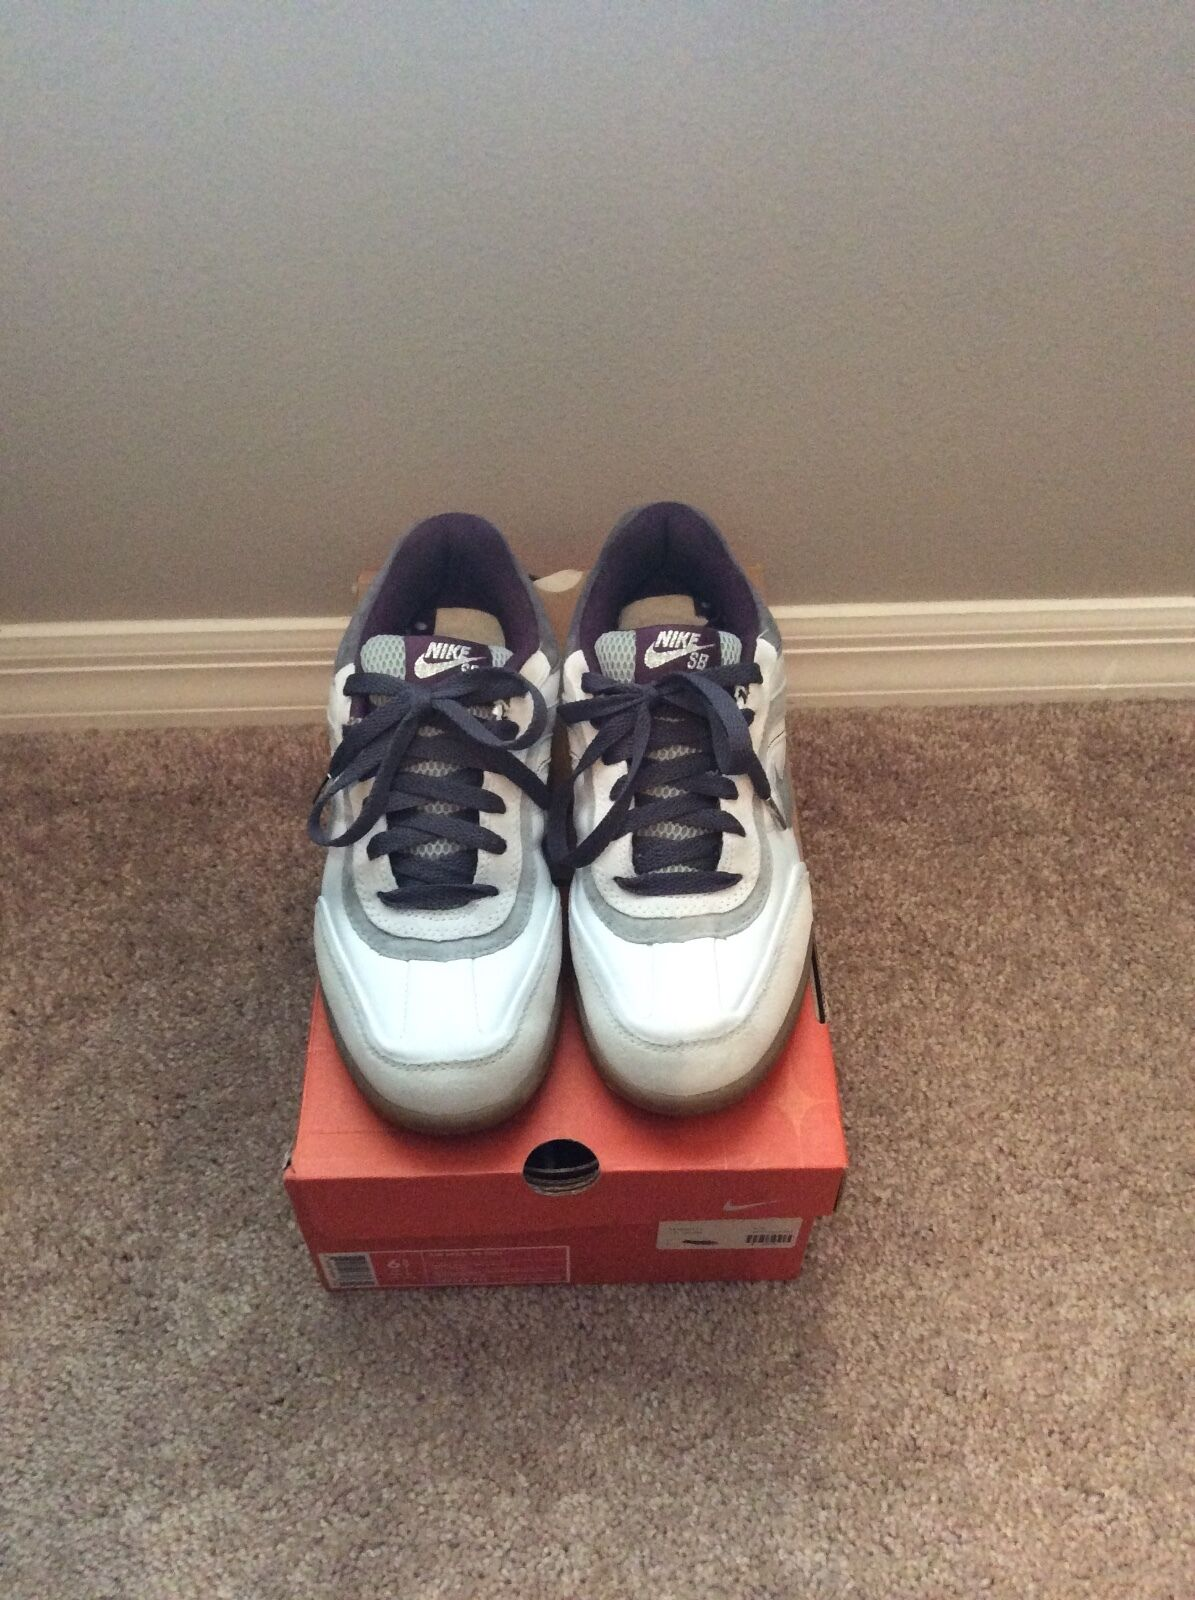 Men's white/tan/gray Nike Air Max '95Price reduction US size 7 Brand discount